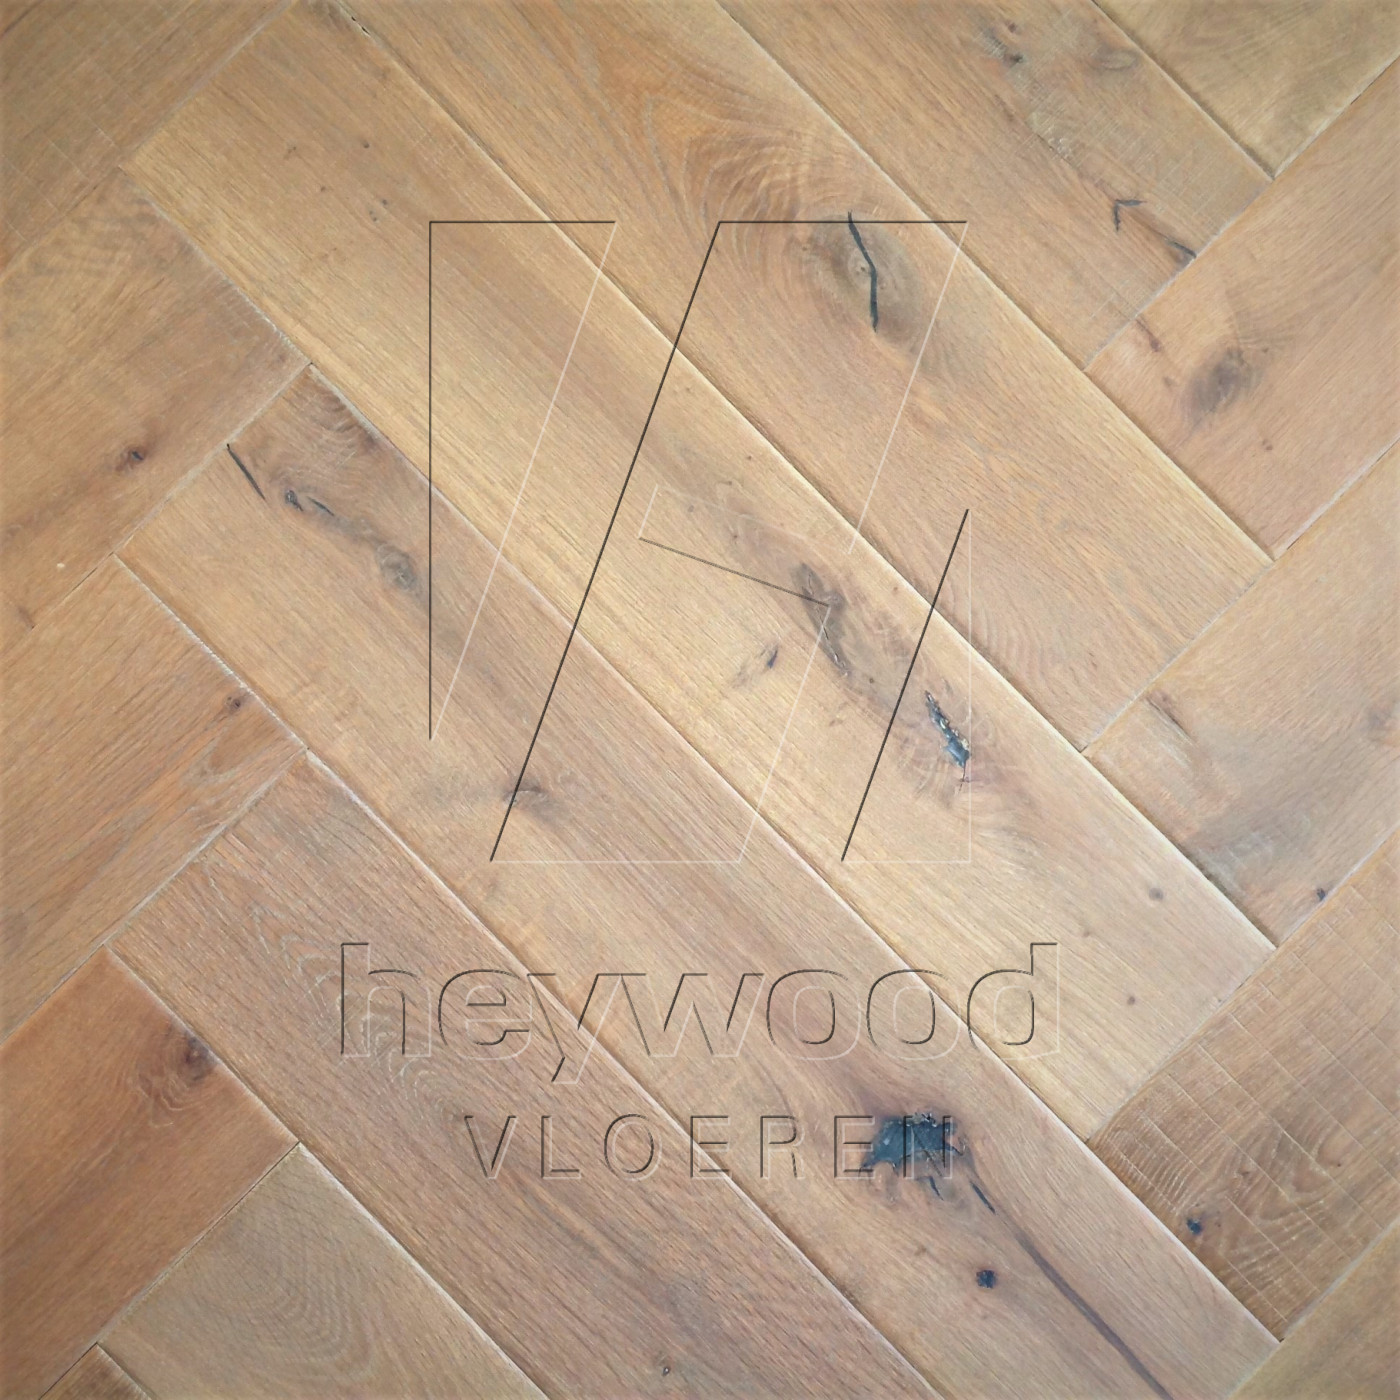 Shrunk Herringbone 'Vanoise' in Herringbone of Pattern & Panel Floors